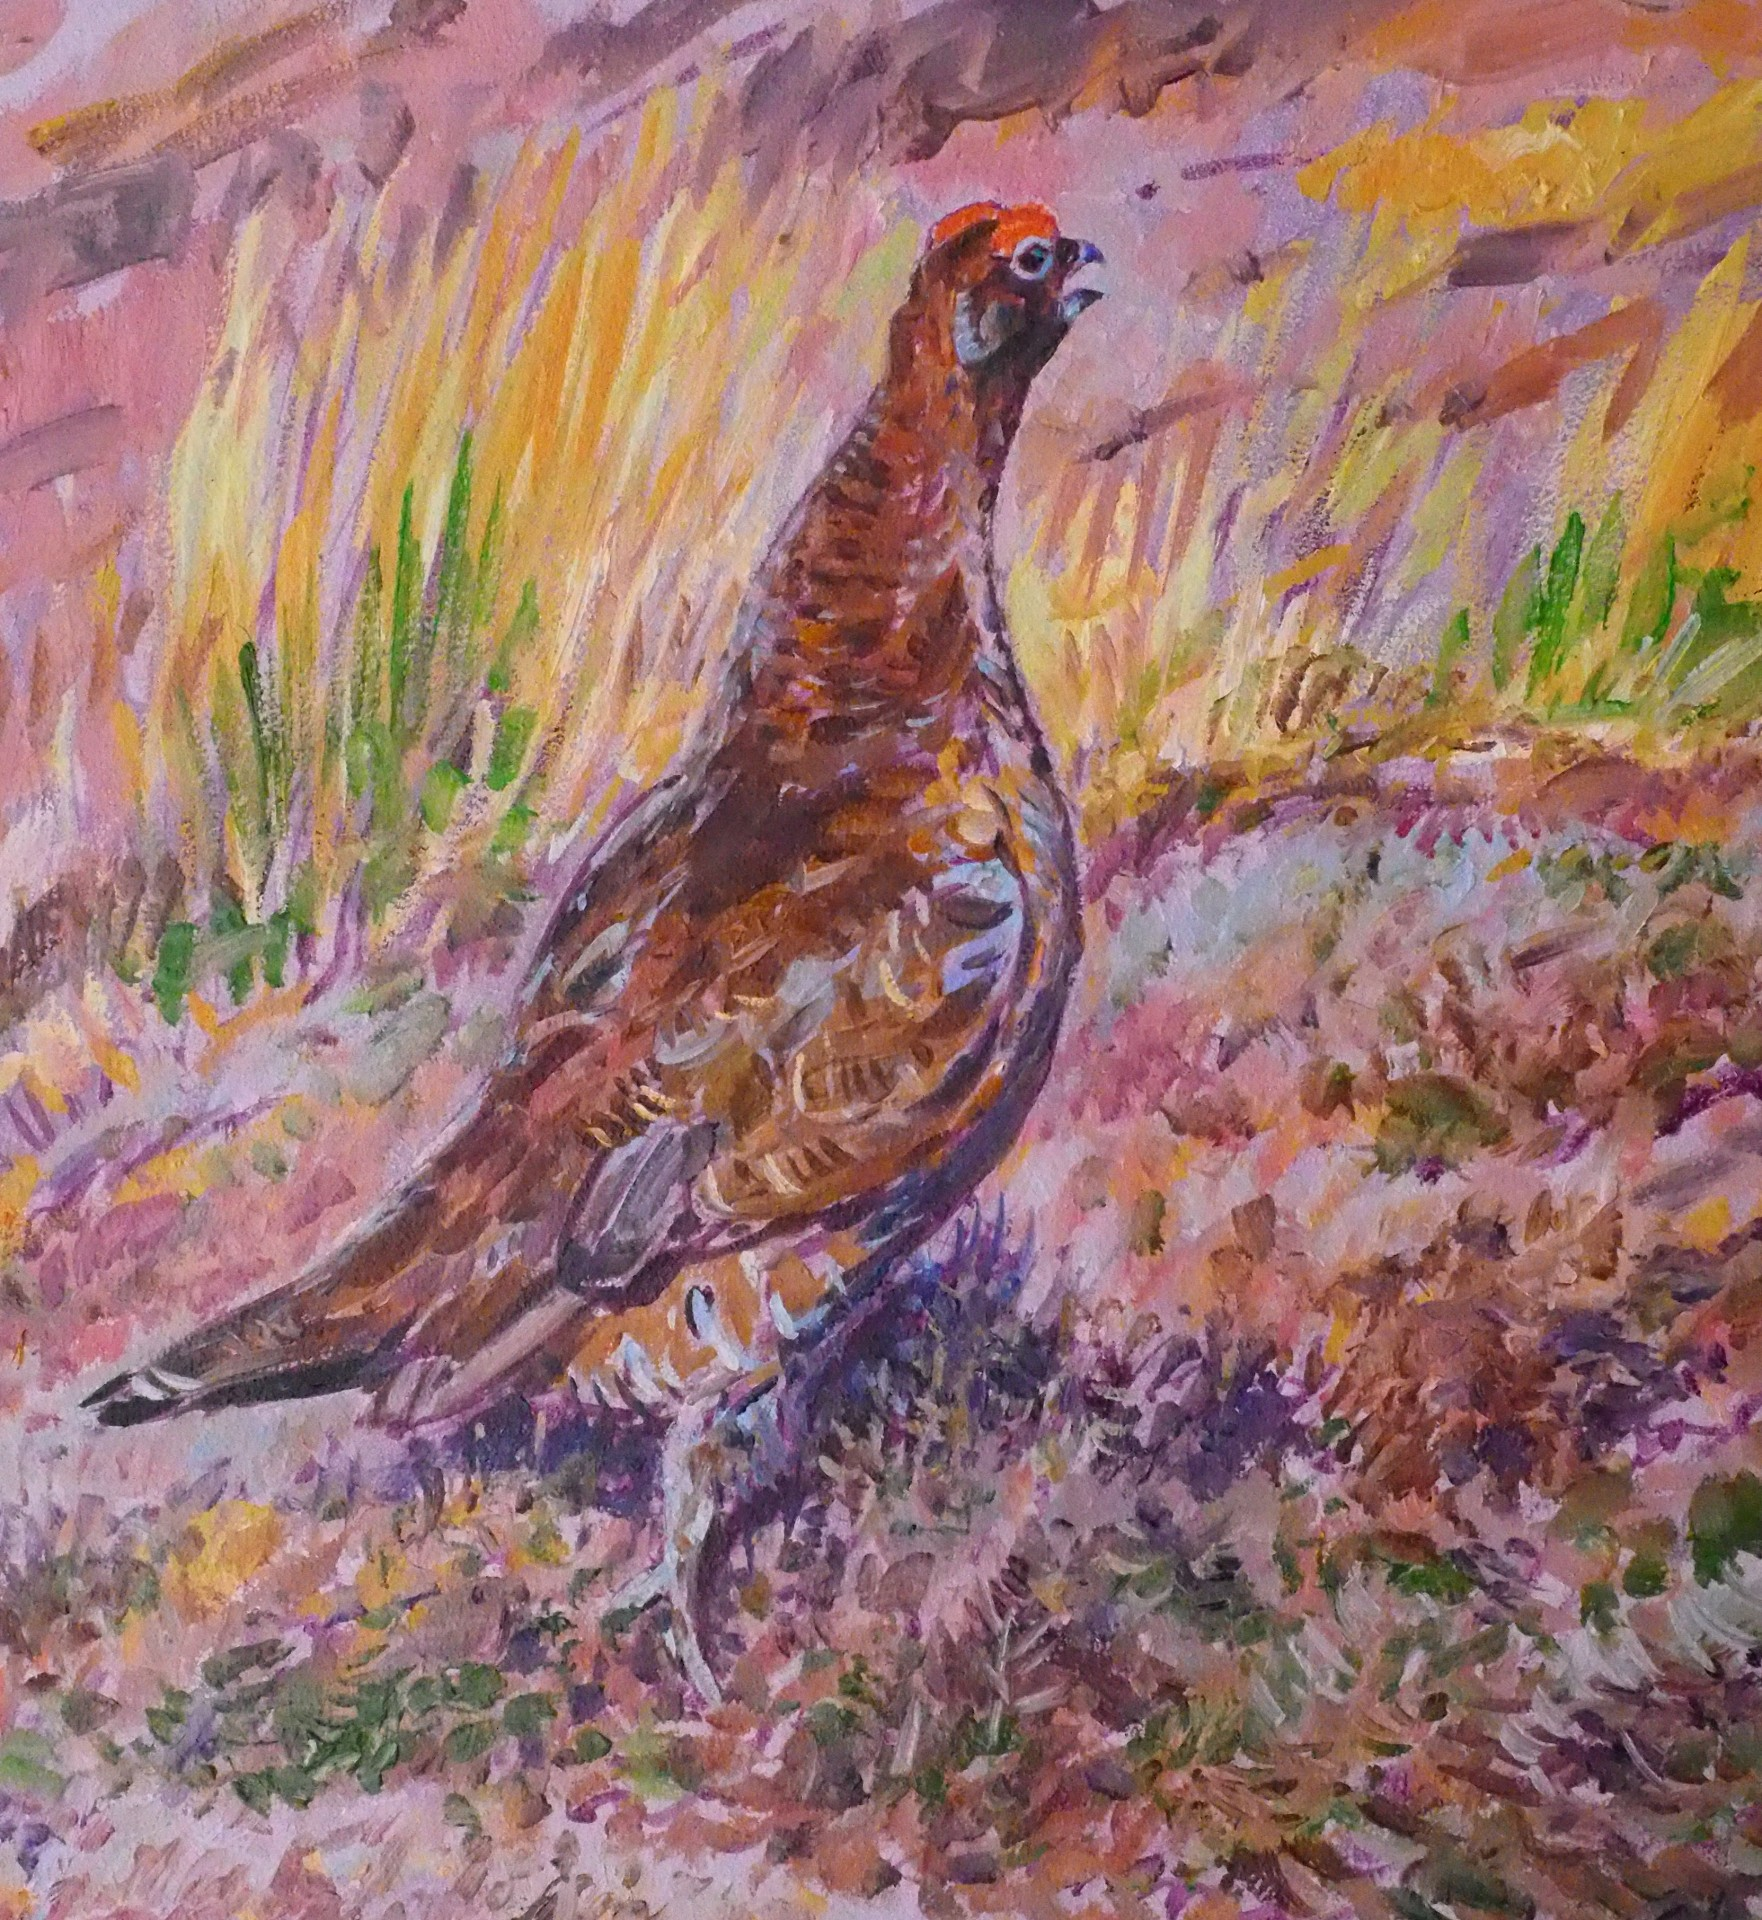 Red Grouse, Nidderdale, North Yorkshire